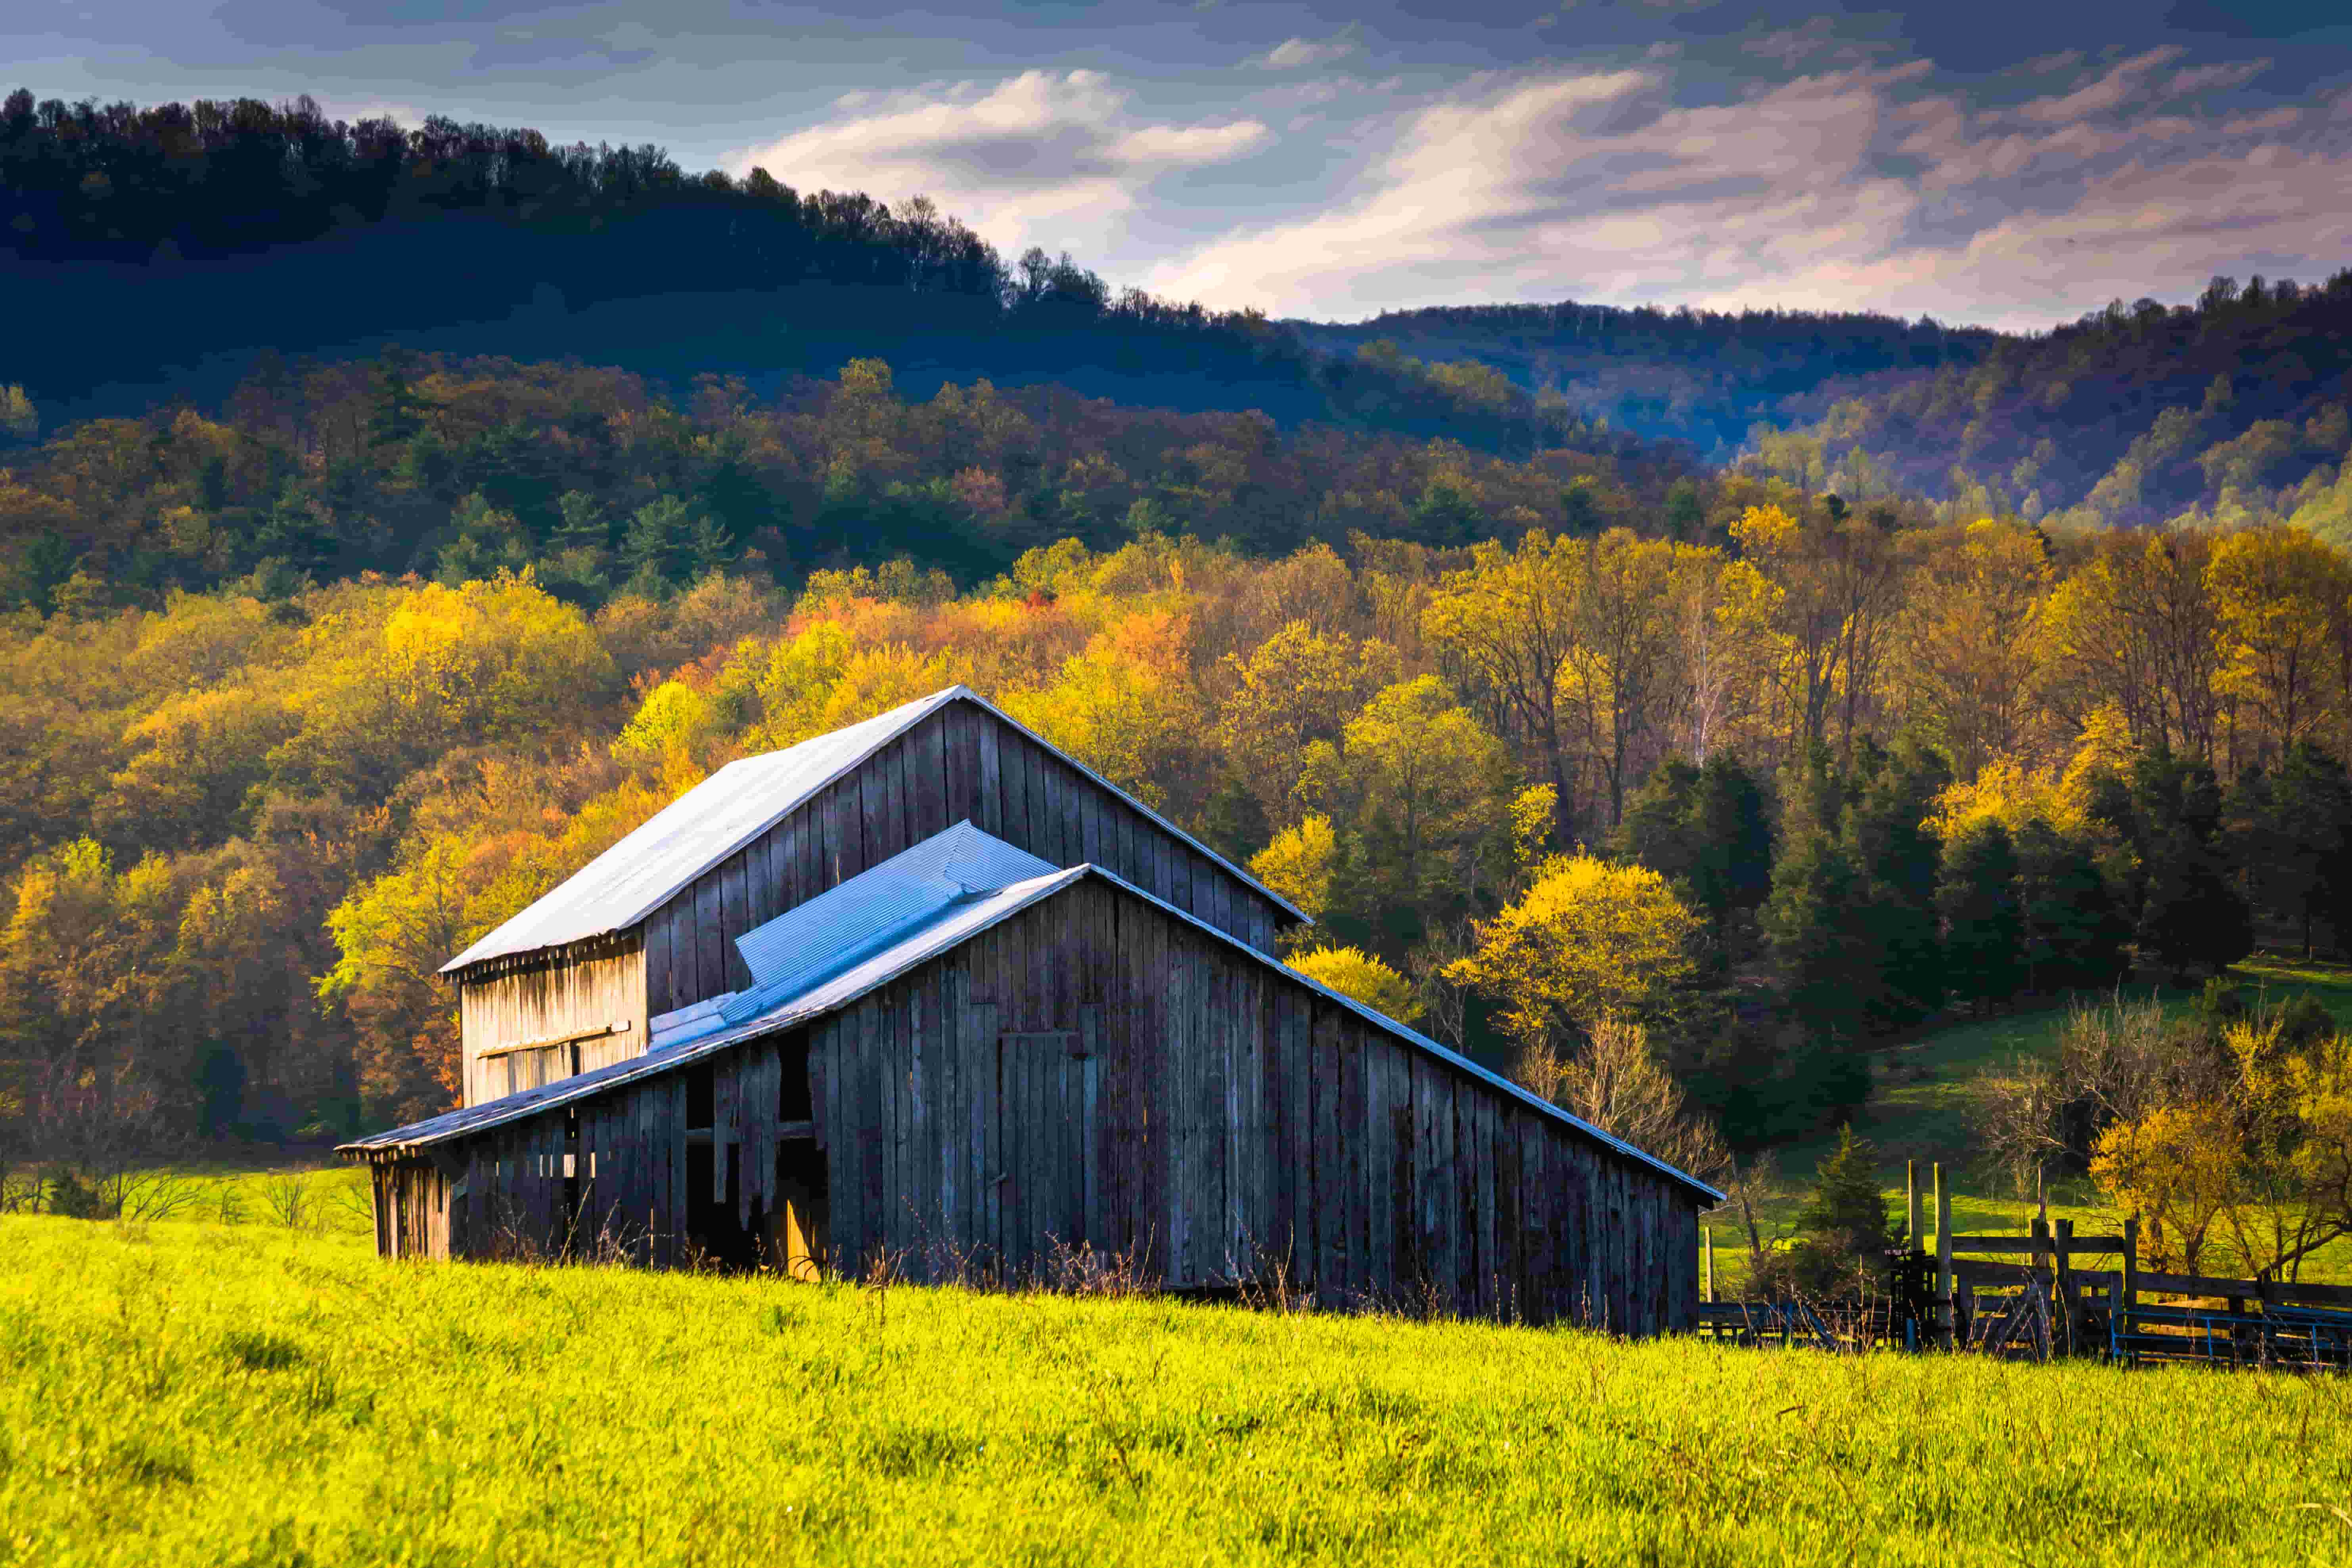 A Farmhouse in the foreground in Virginia's Shenandoah Valley, with hills behind it